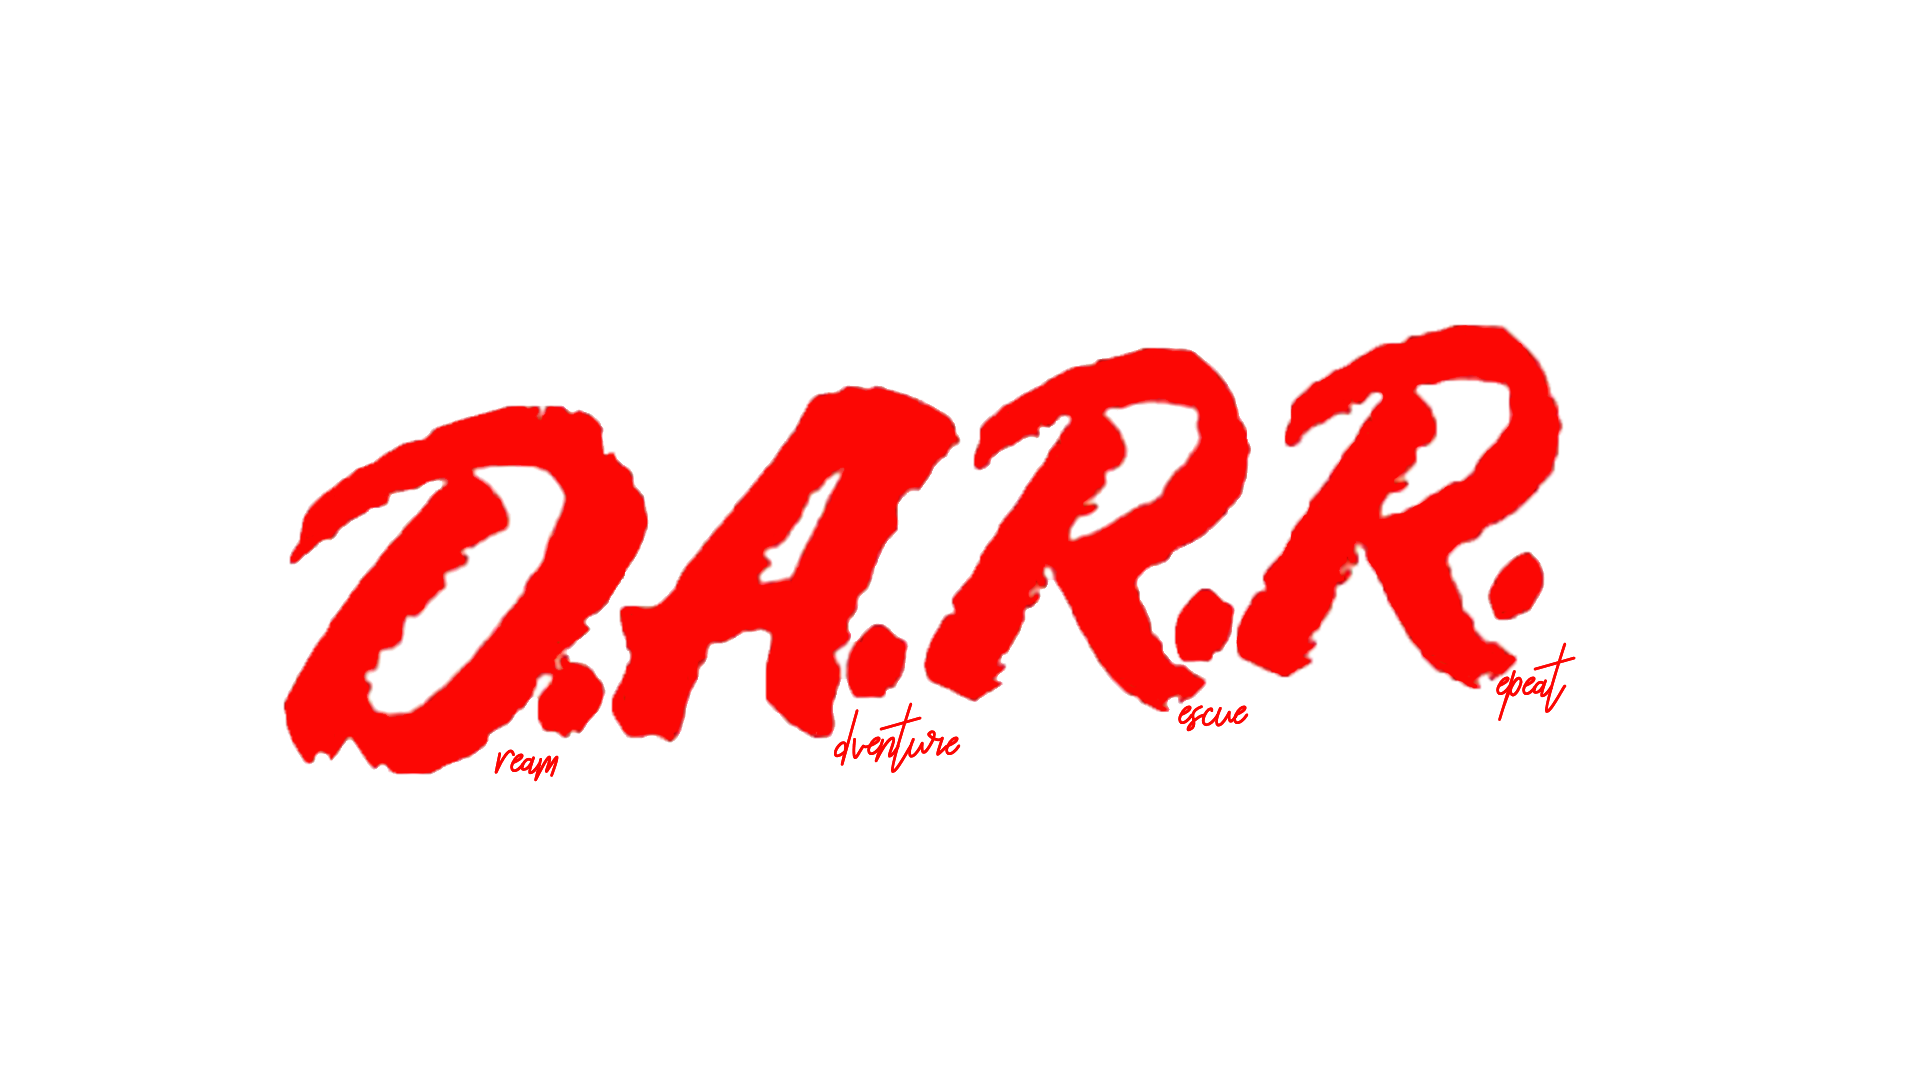 NEW DARR.png